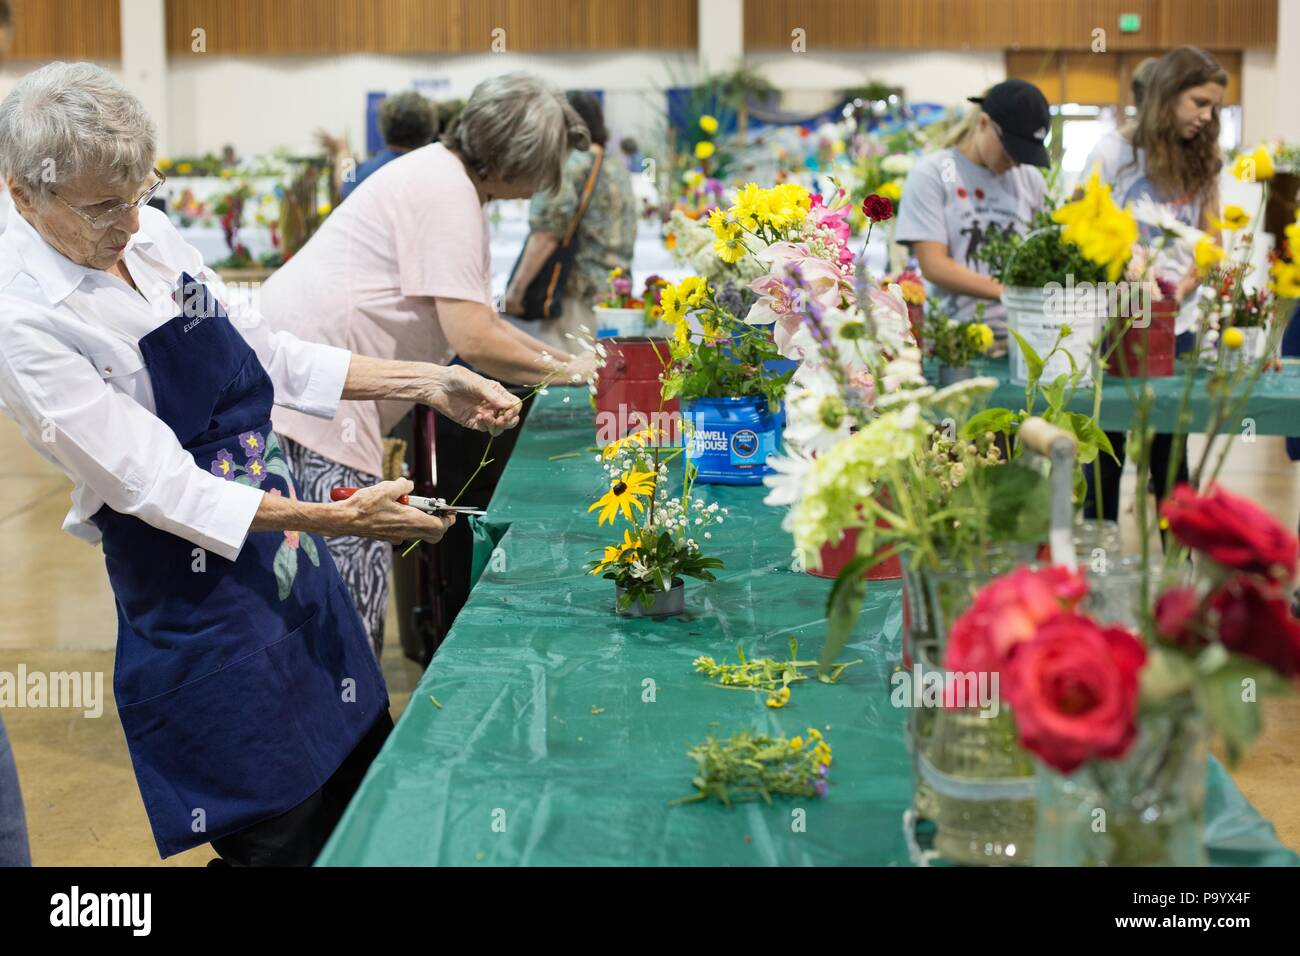 A senior woman working on a flower arrangement, at the Lane County Fair in Eugene, Oregon, USA. Stock Photo